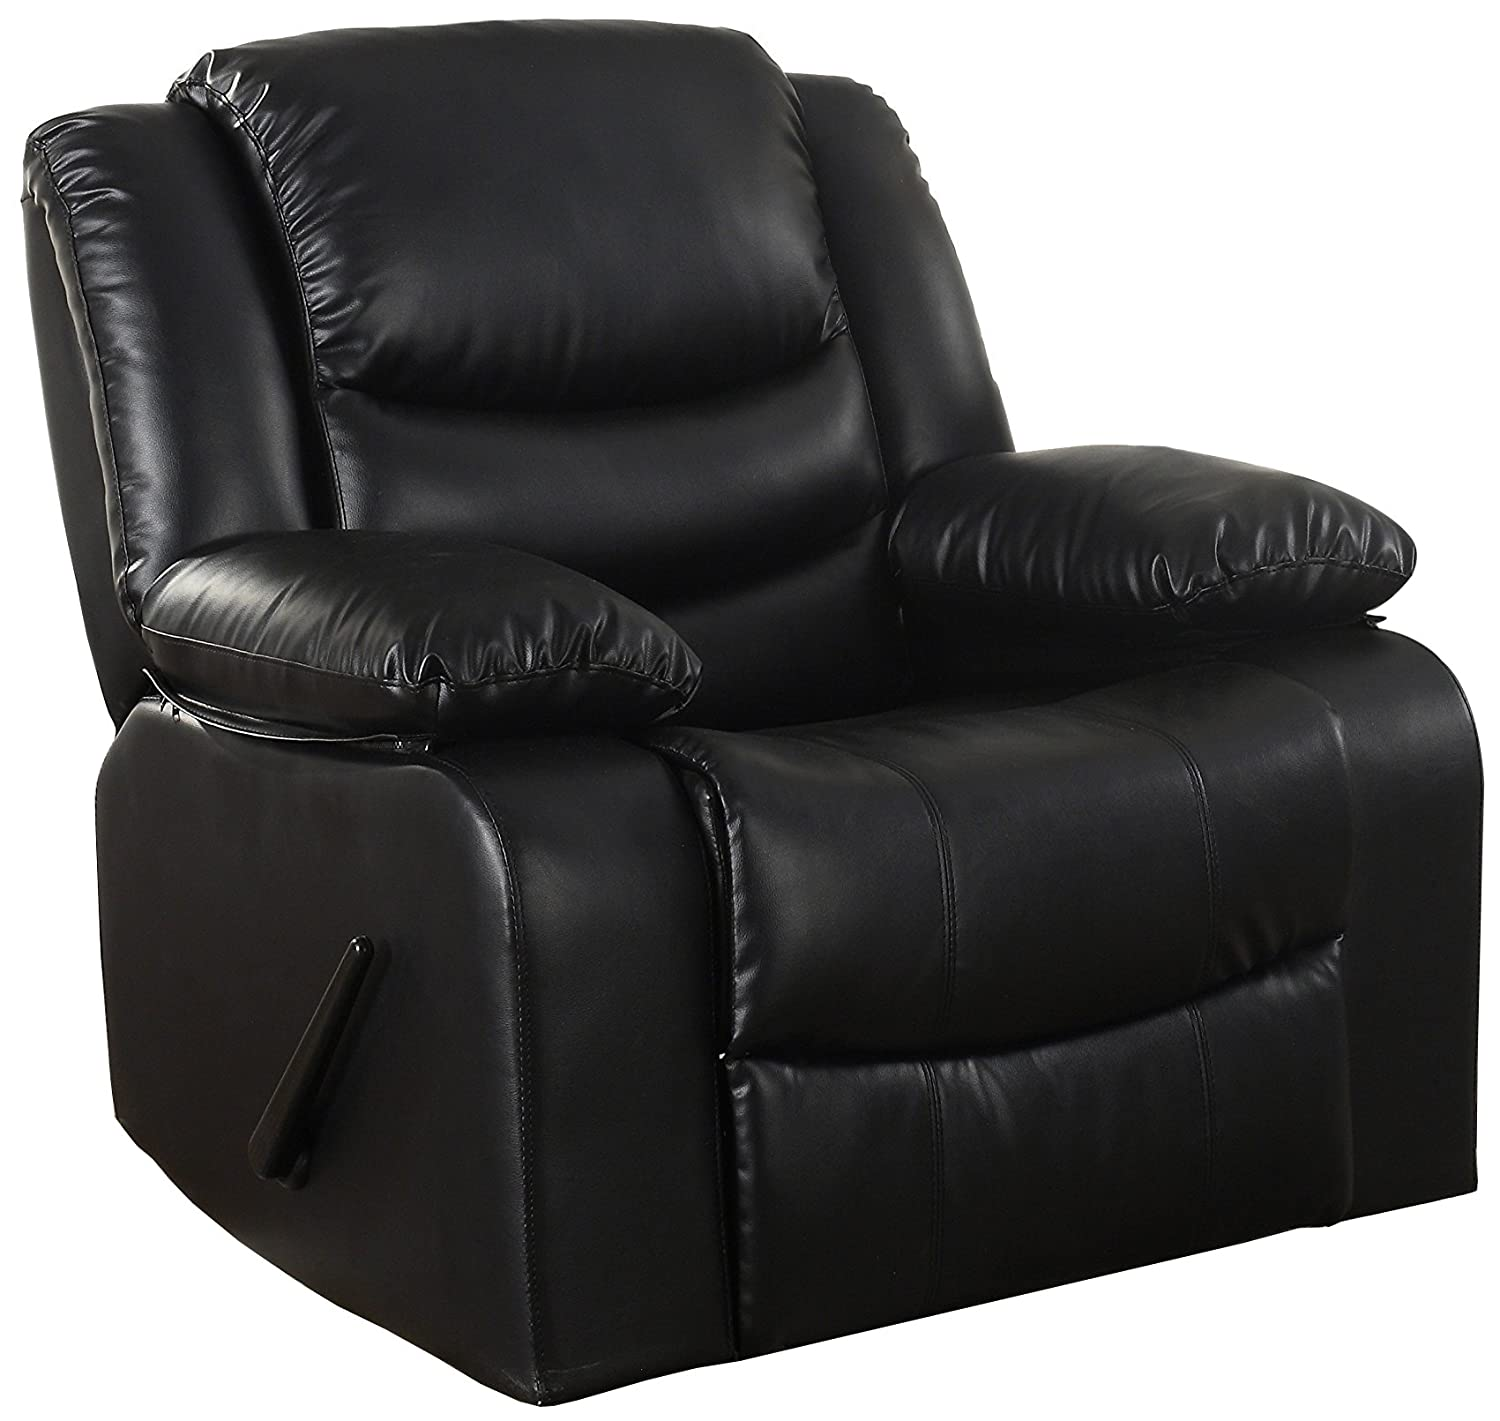 pdx wayfair leather furniture z reviews maverick la boy recliner